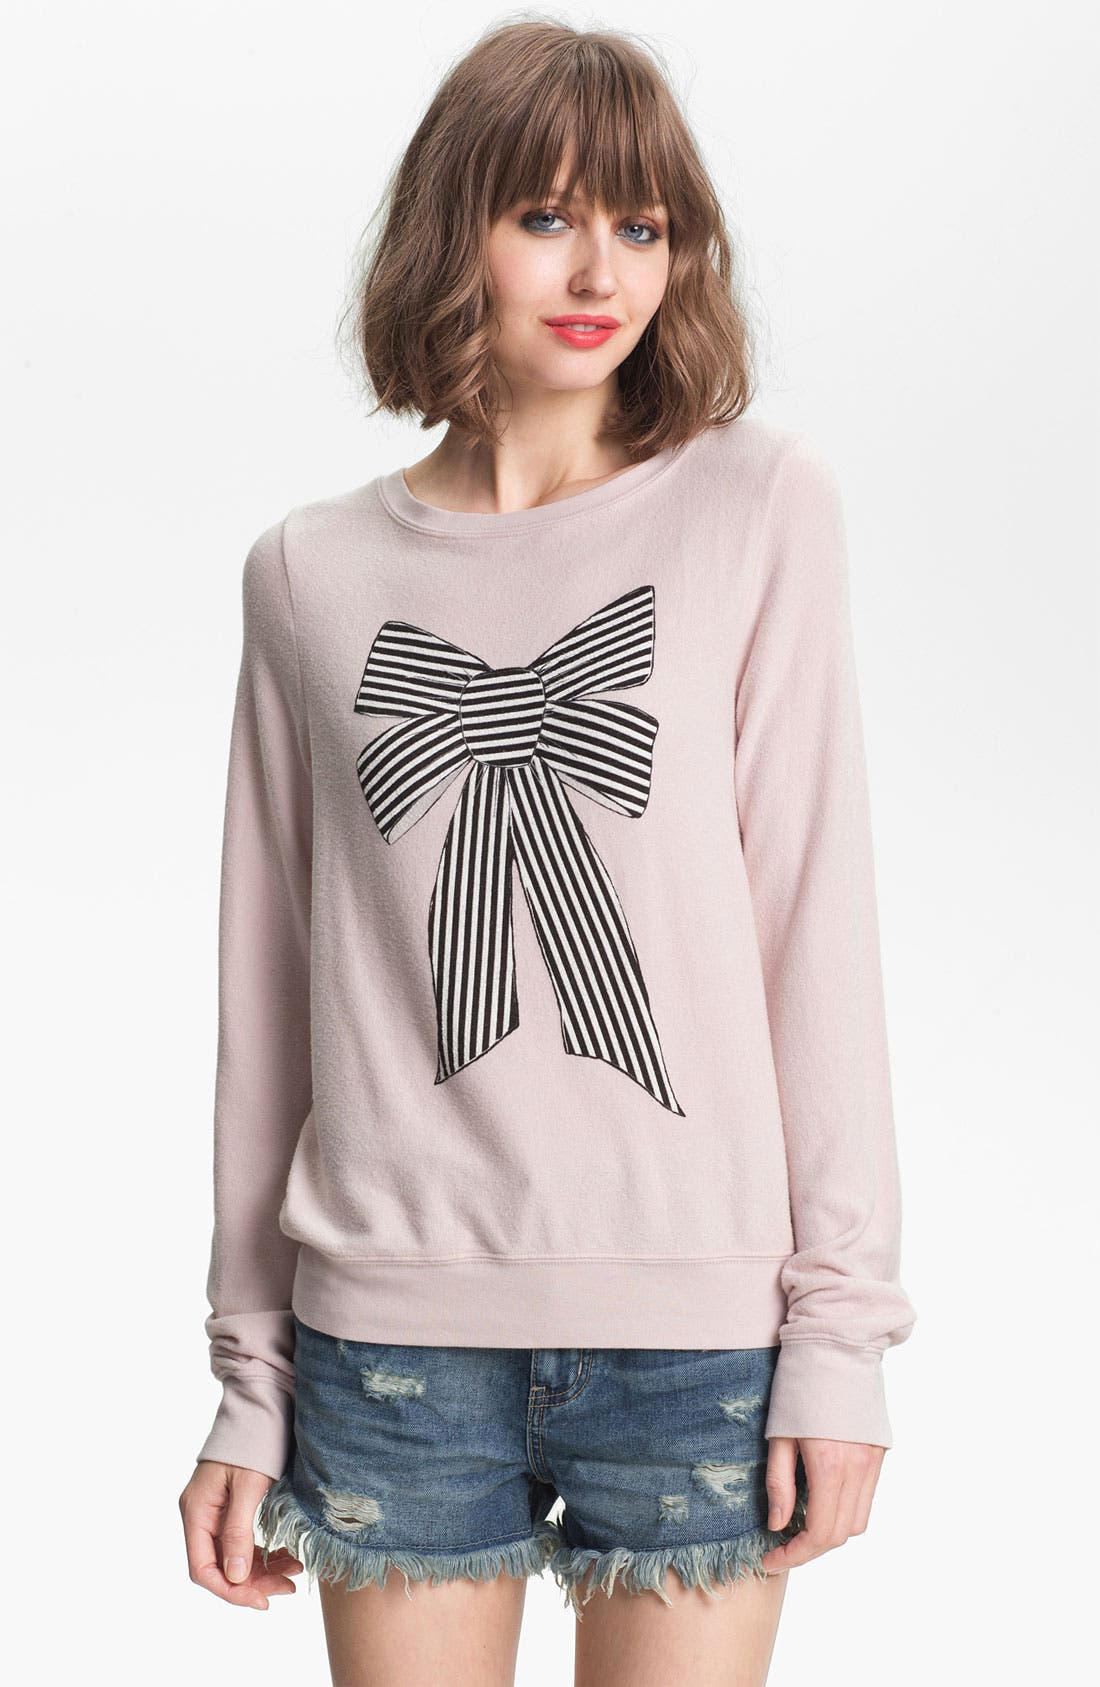 Alternate Image 1 Selected - Wildfox 'Coco' Graphic Sweatshirt (Nordstrom Exclusive)